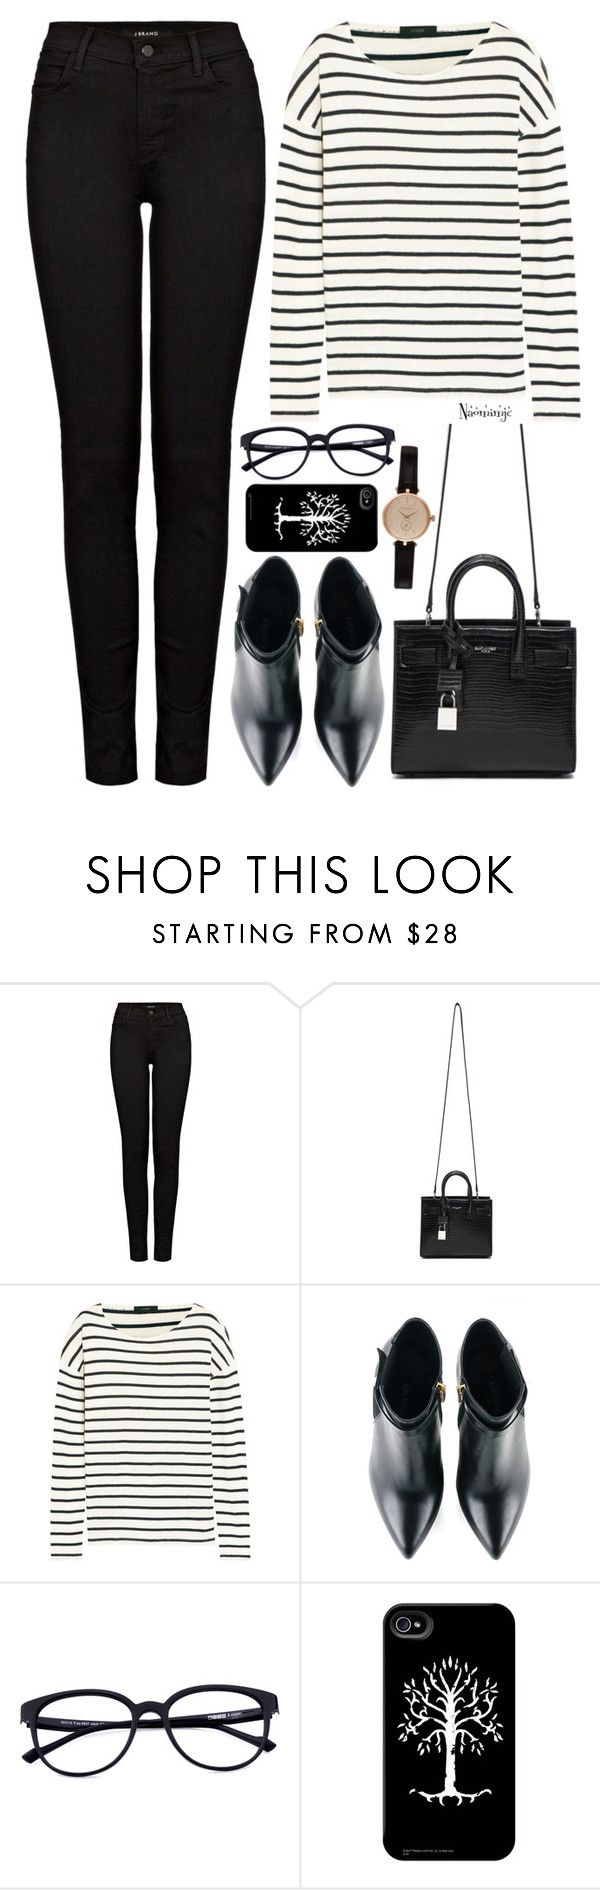 """Untitled #2900"" by naomimjc ❤ liked on Polyvore featuring J Brand, Yves Saint Laurent, J.Crew, Kim Kwang and Barbour"